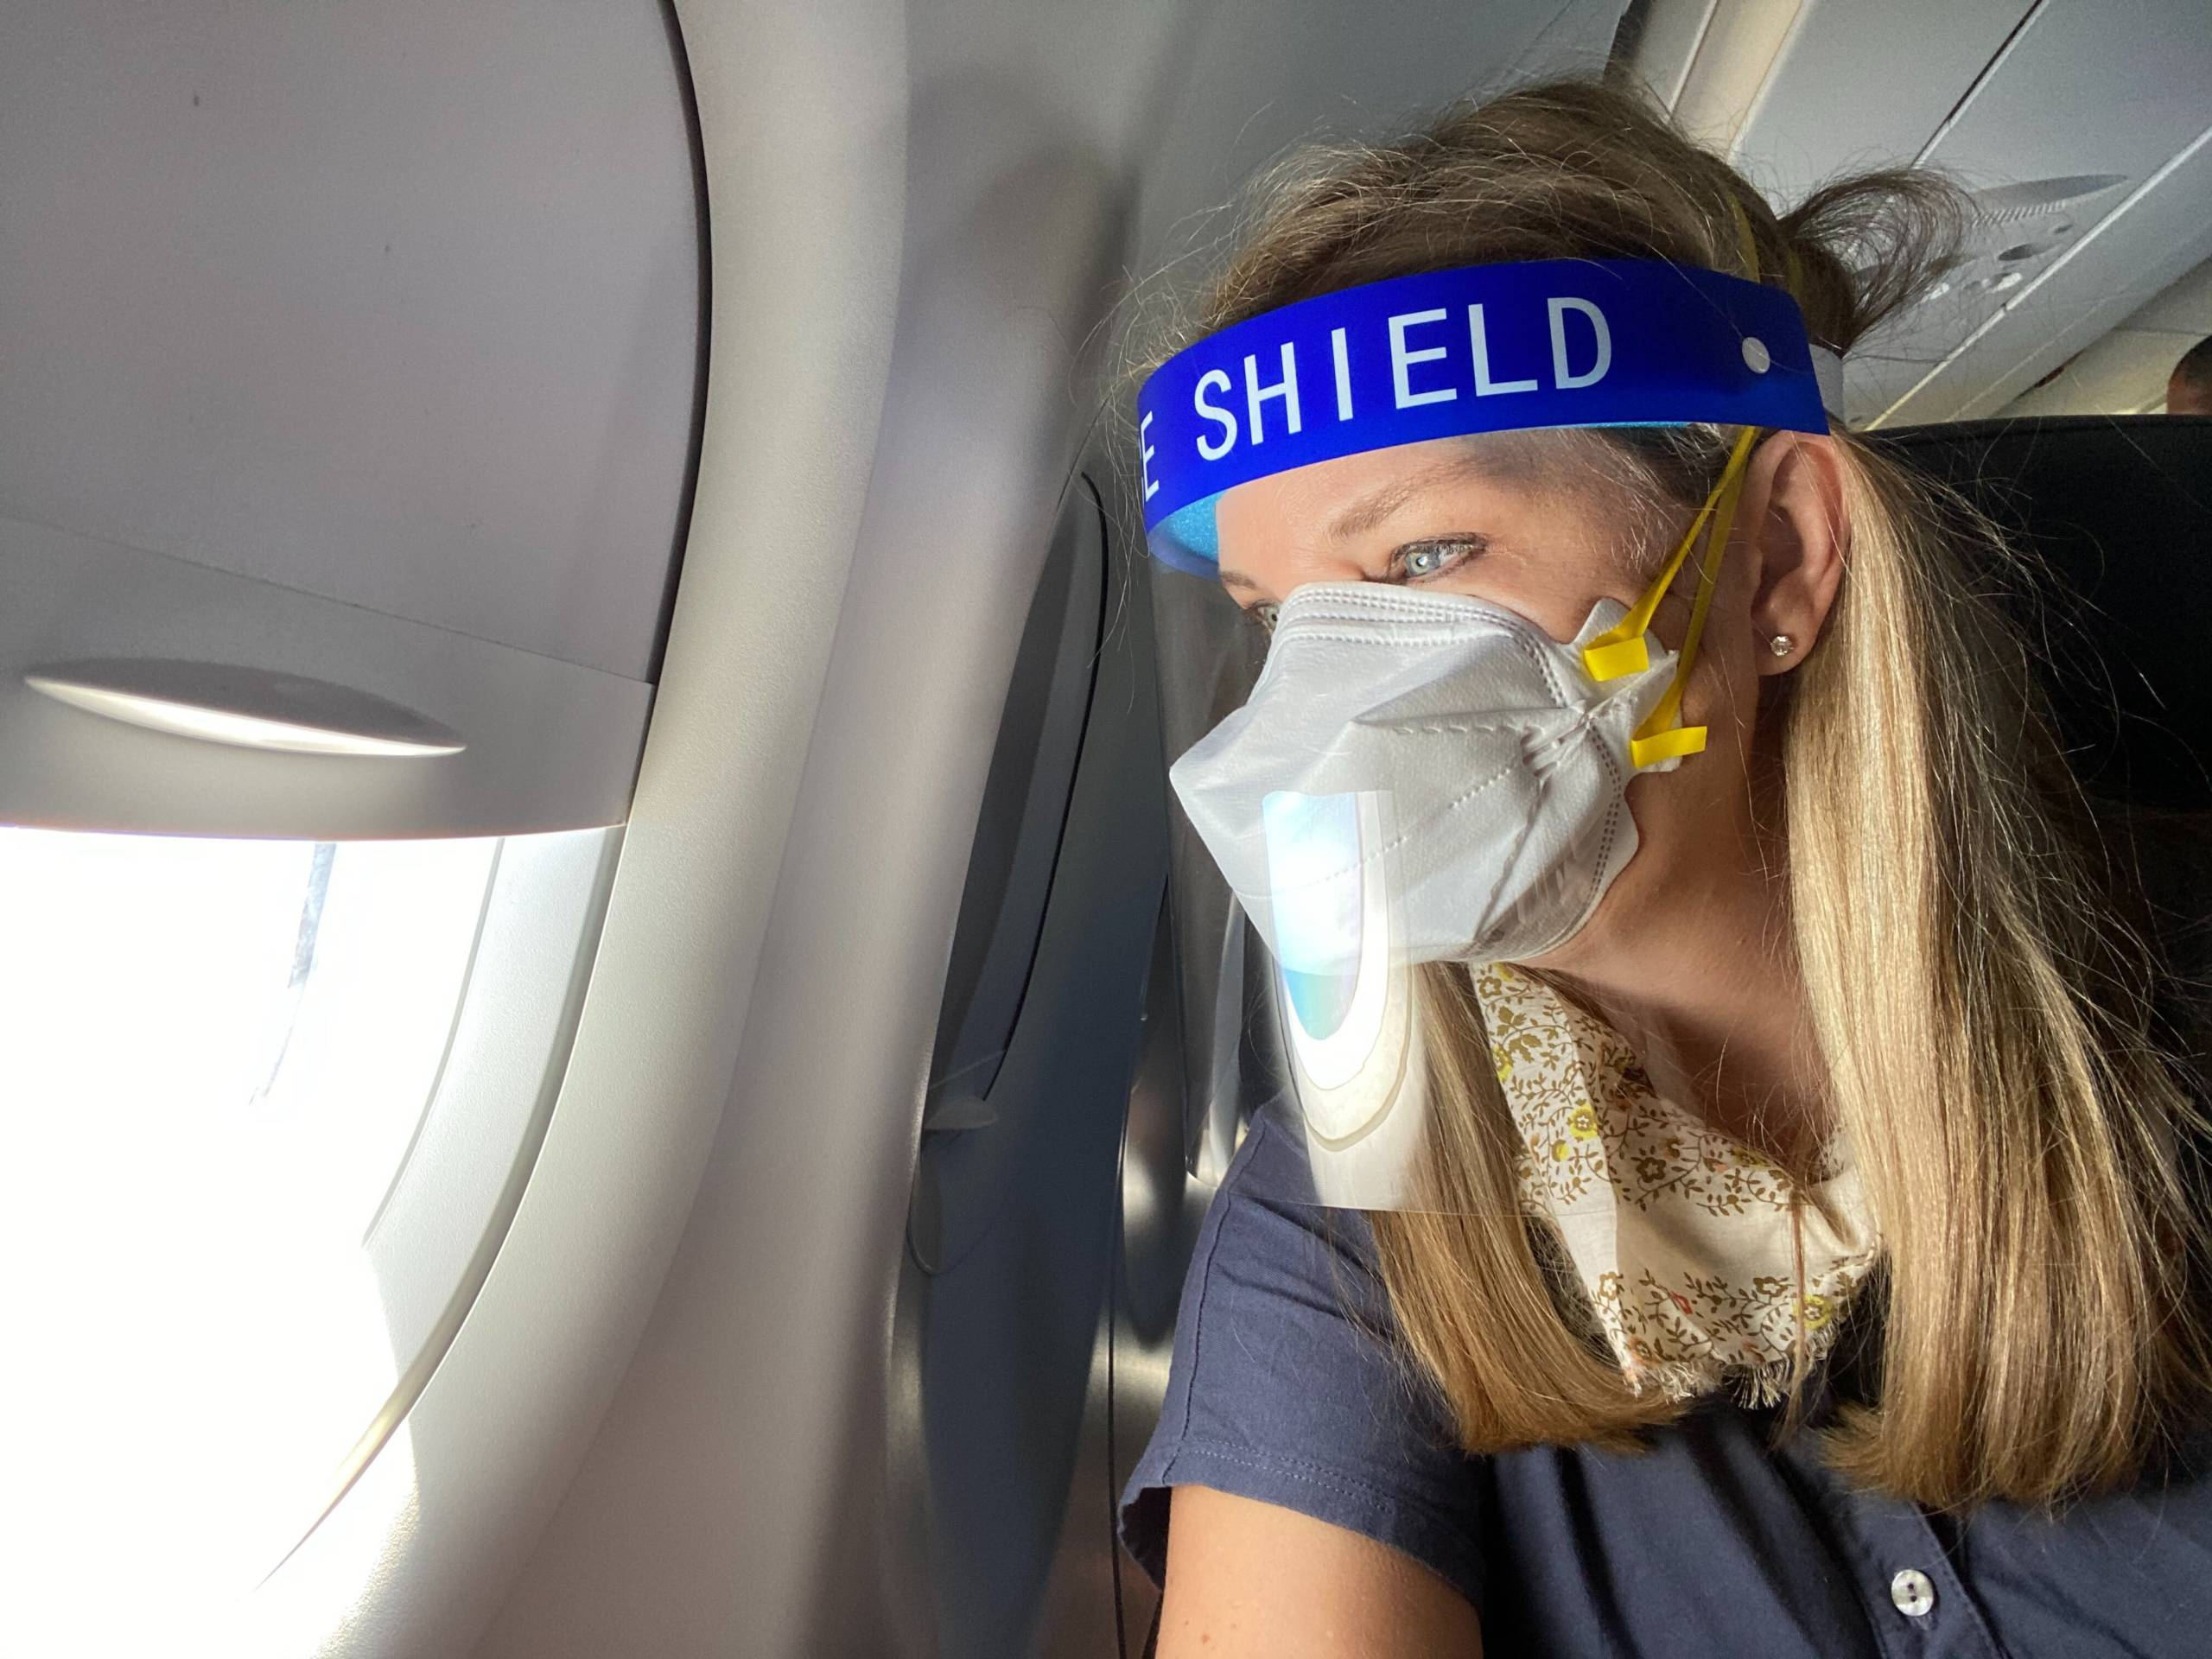 Face shields and sanitizer: What to pack if you're flying during the pandemic